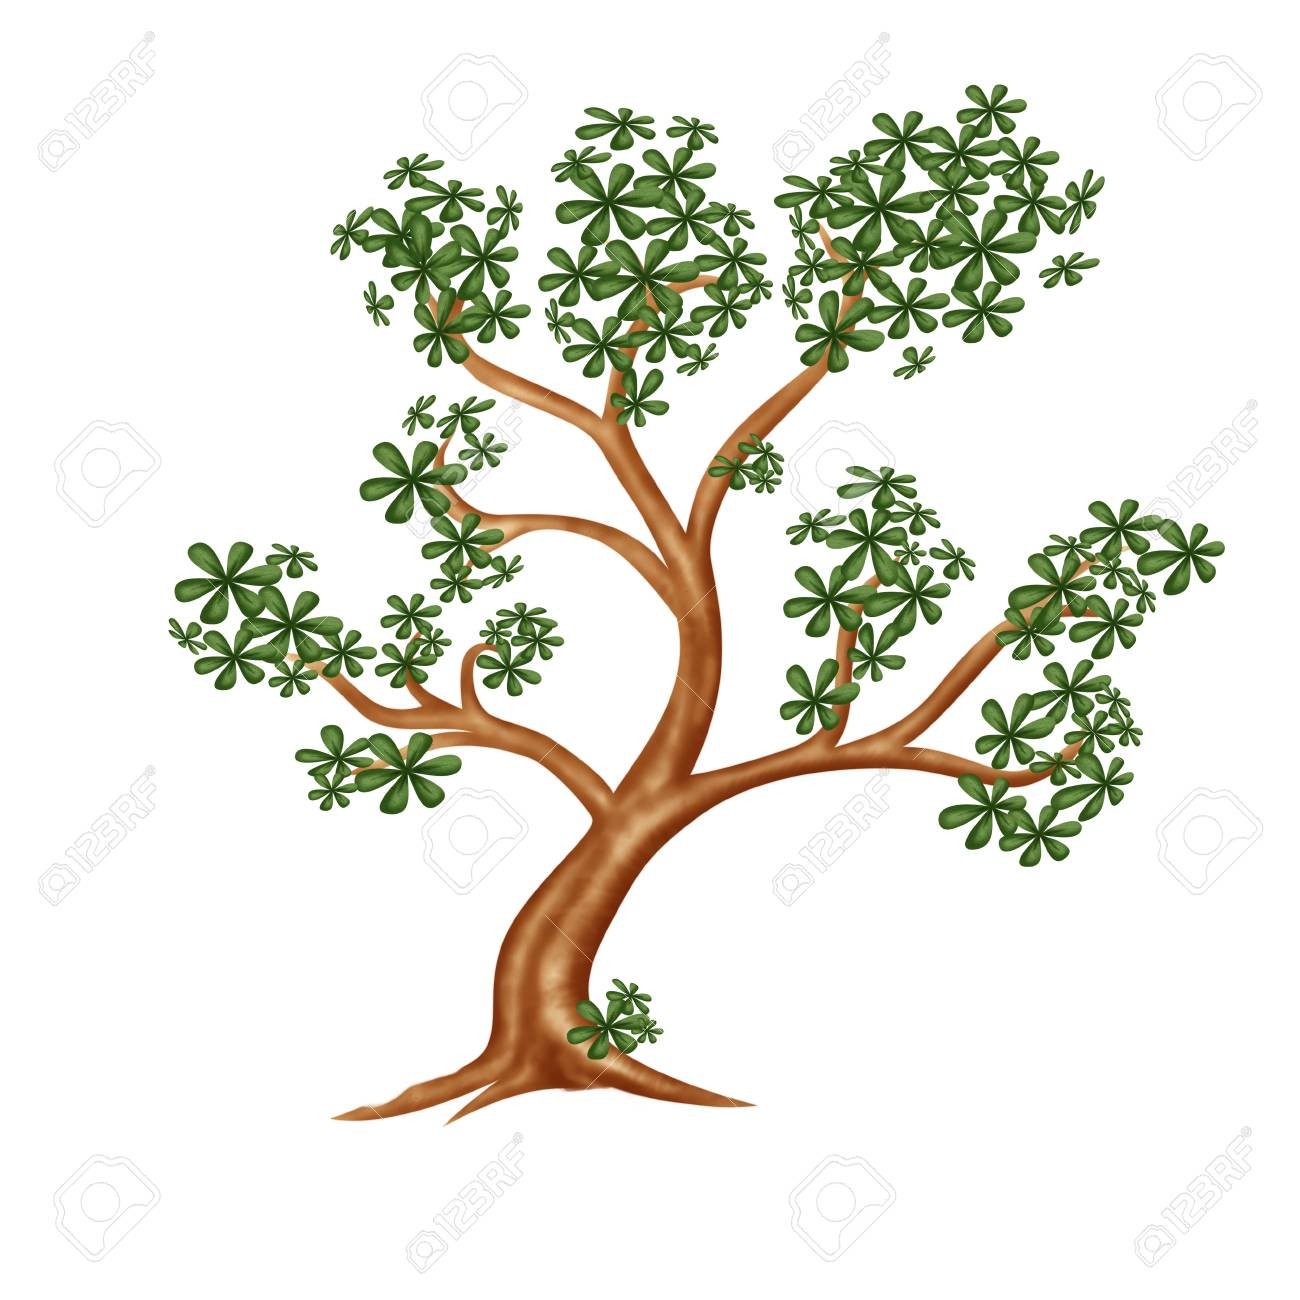 Tree with green leafag , drawing from vintage paper Stock Photo - 9733526